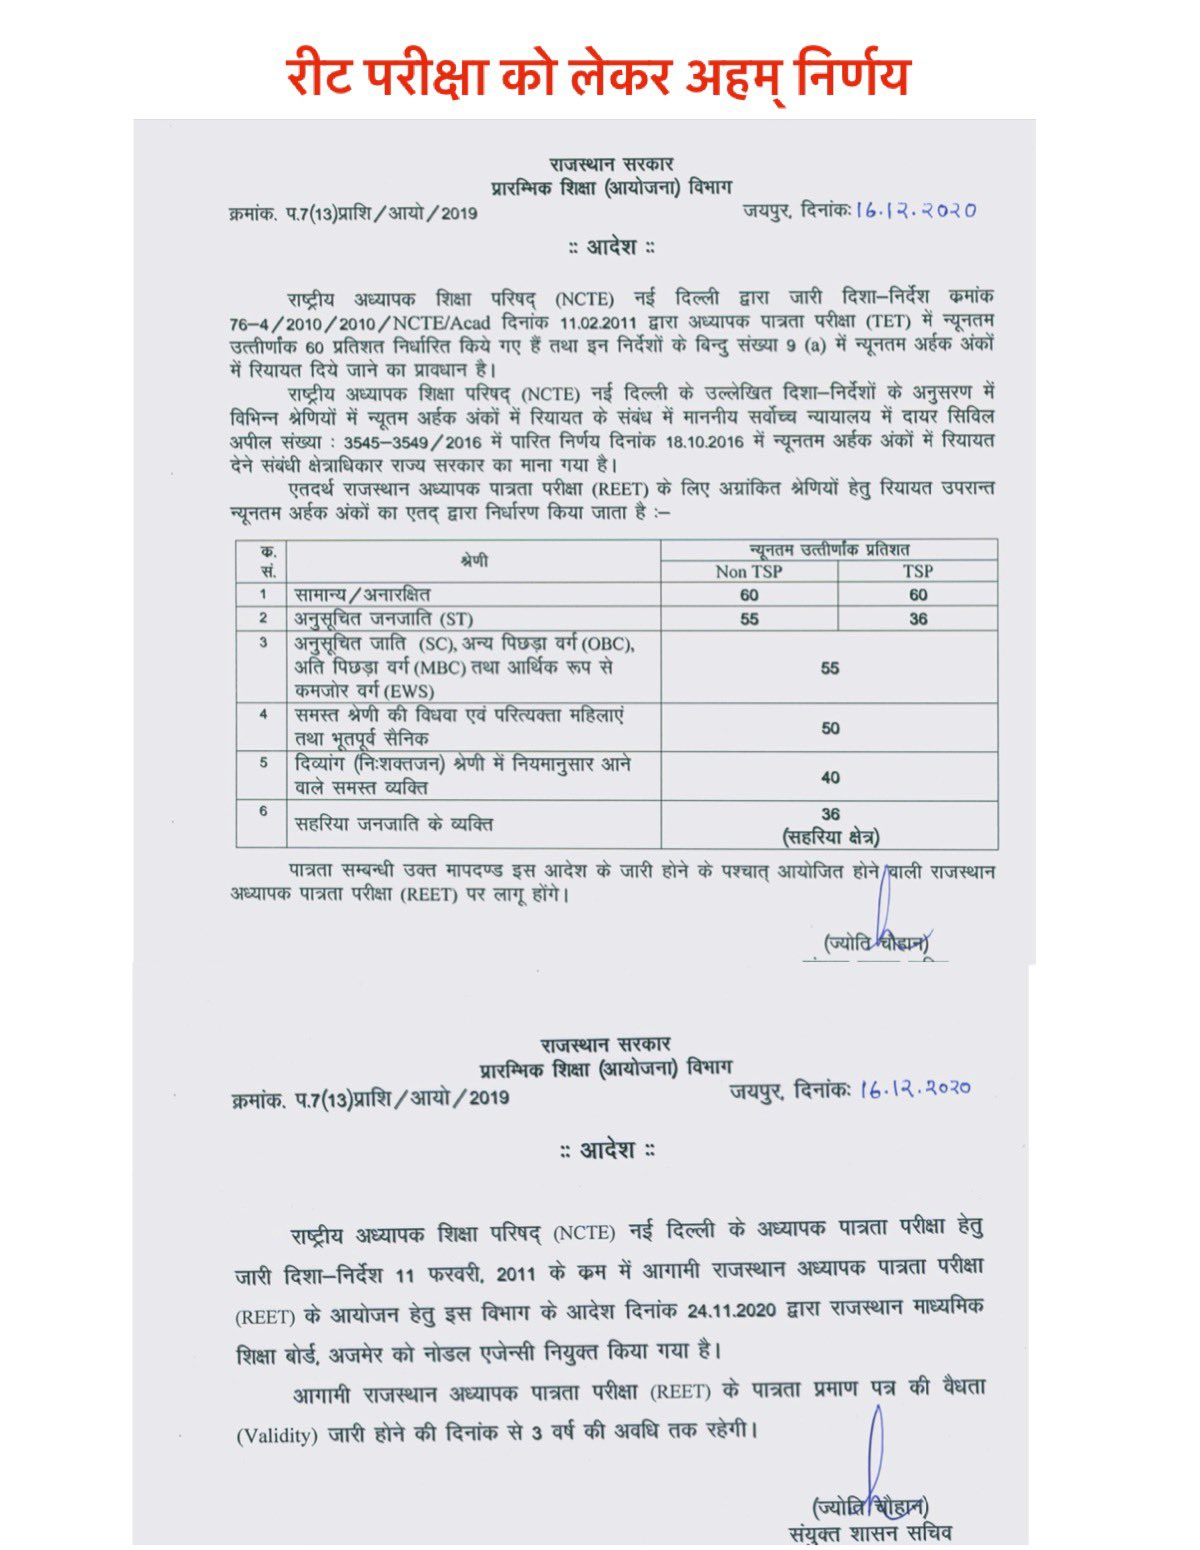 Eligibility Marks in REET Exam